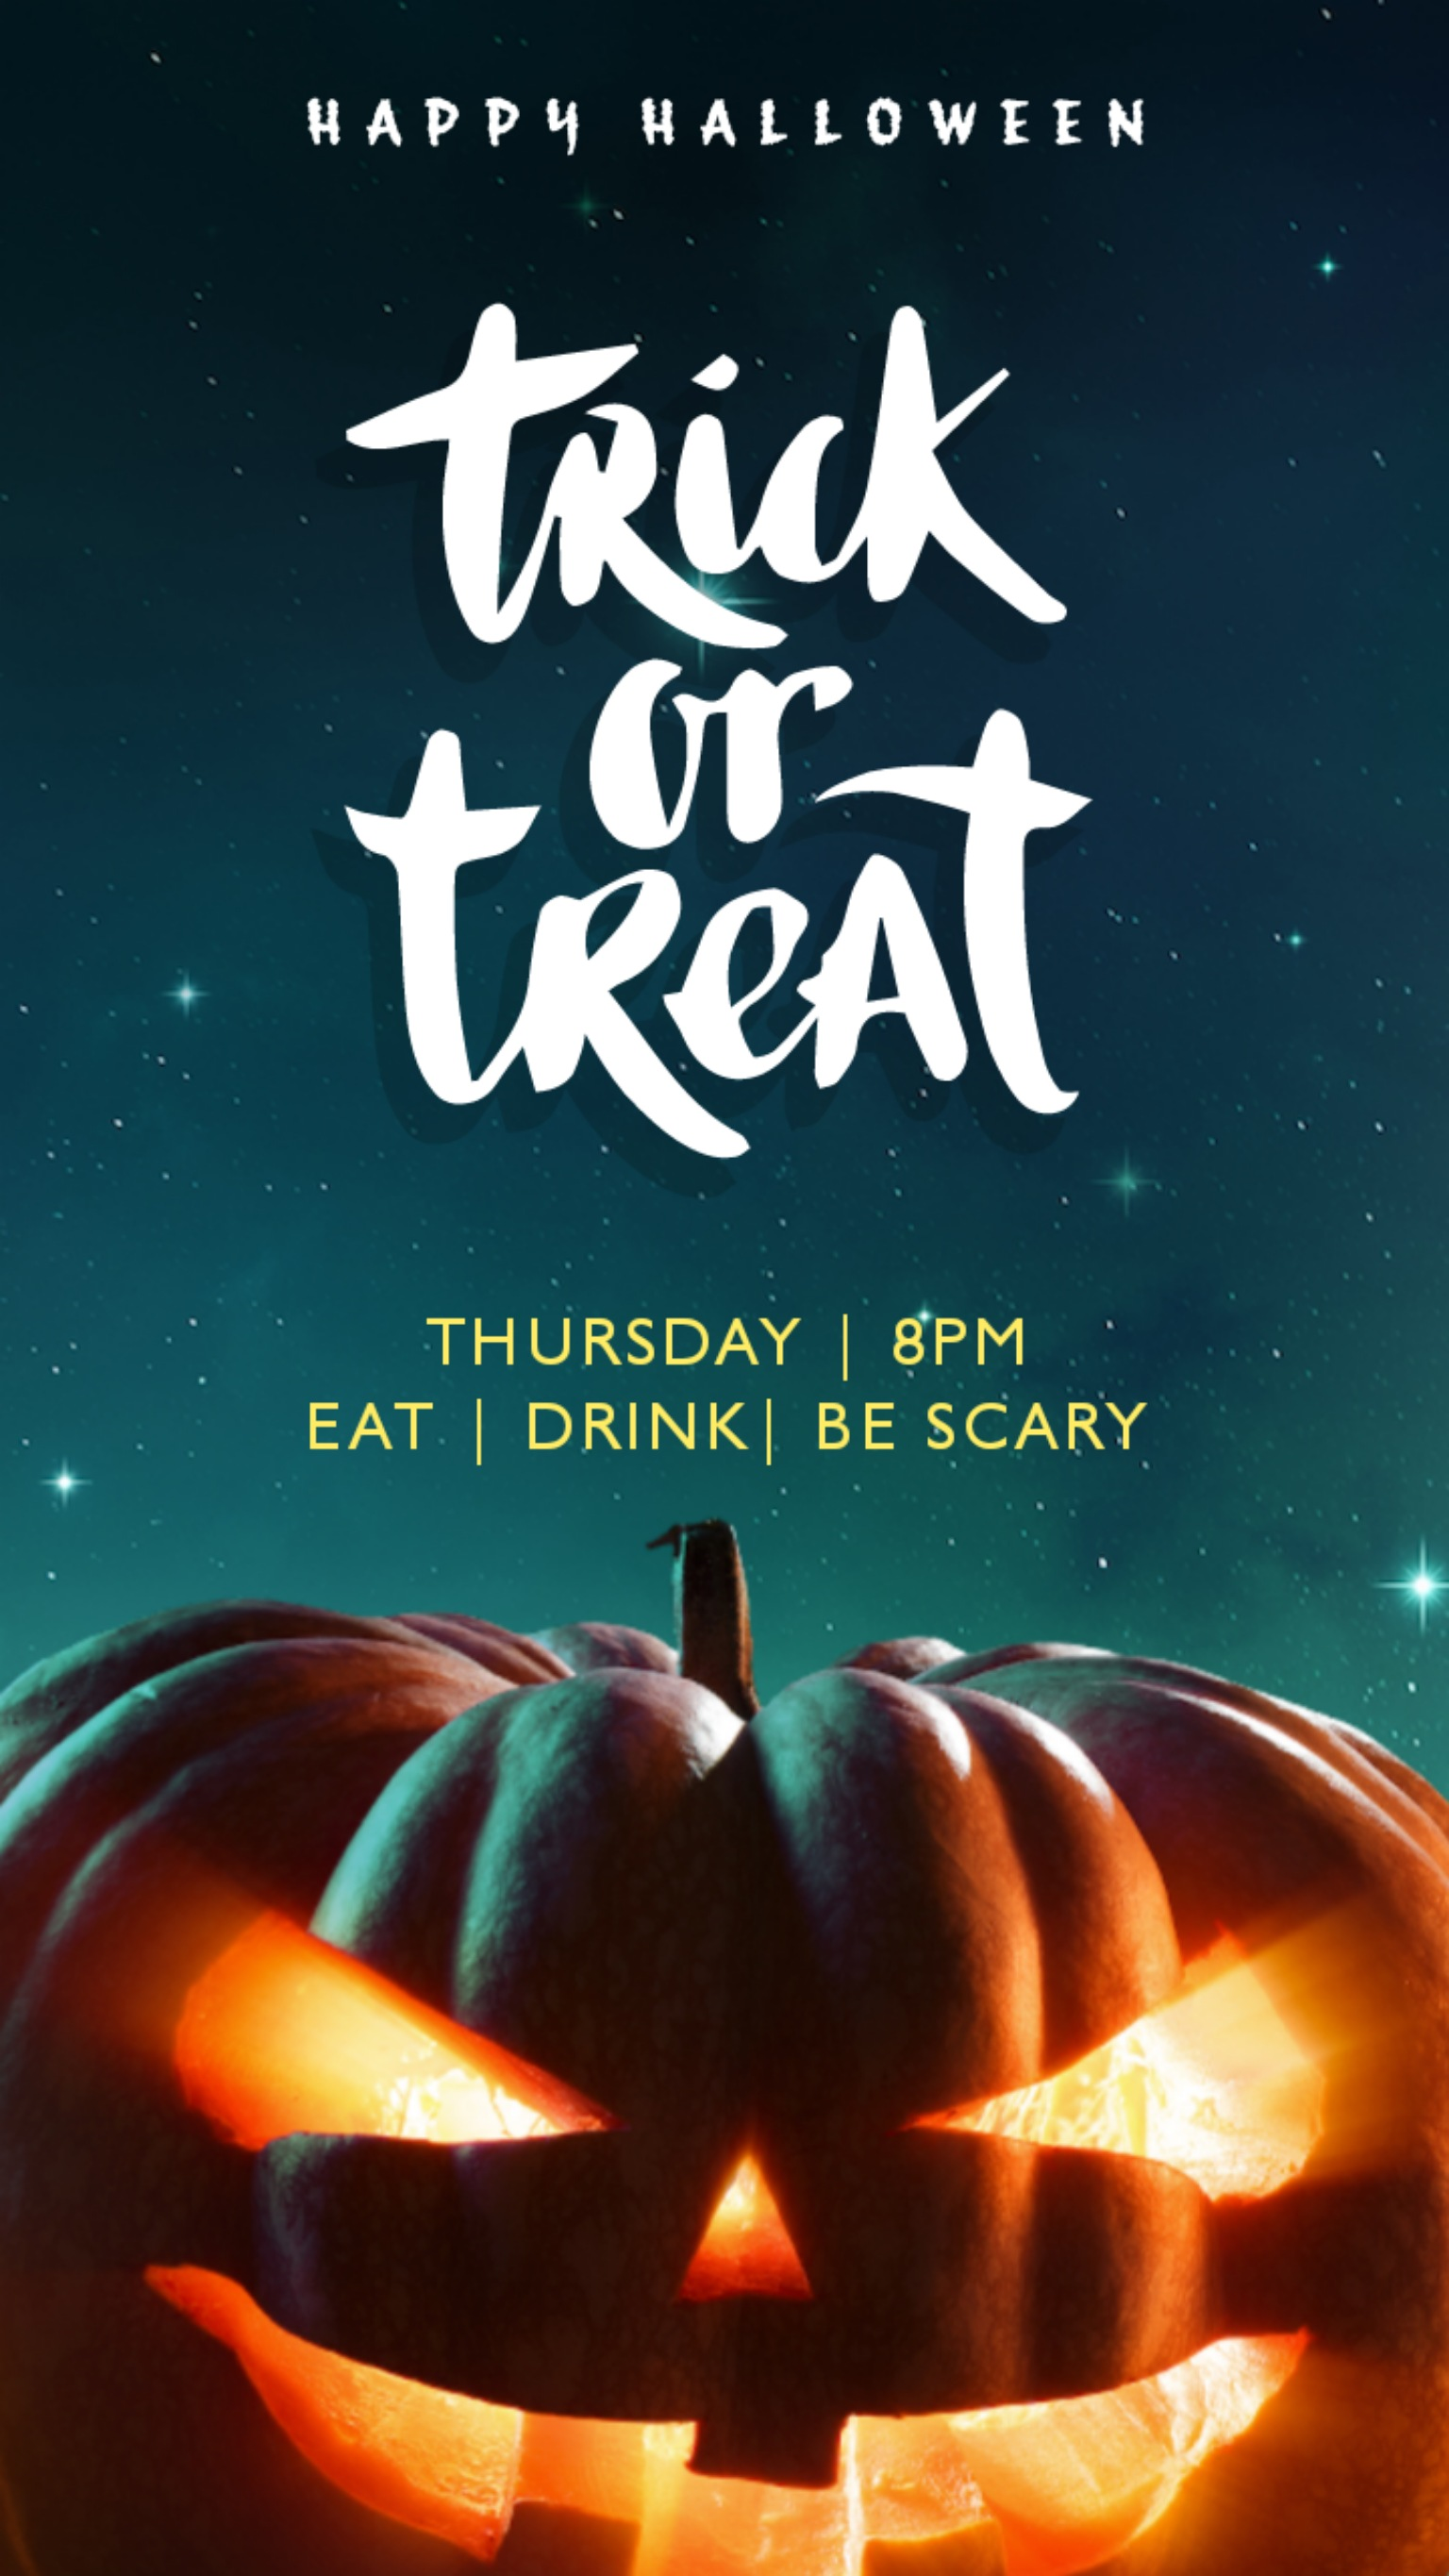 I can creat design pamphlet and poster party Halloween